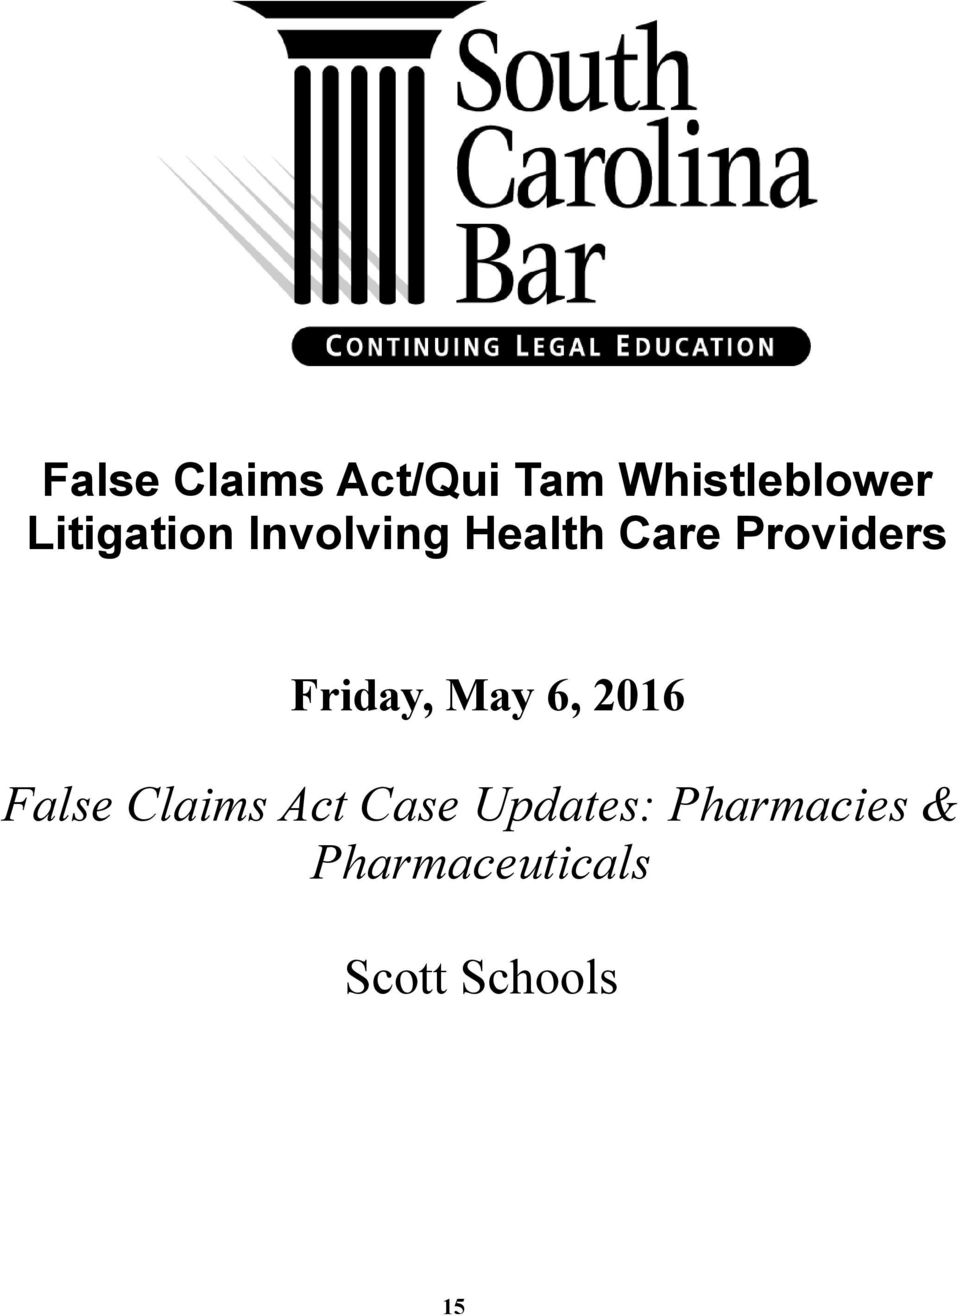 Friday, May 6, 2016 False Claims Act Case